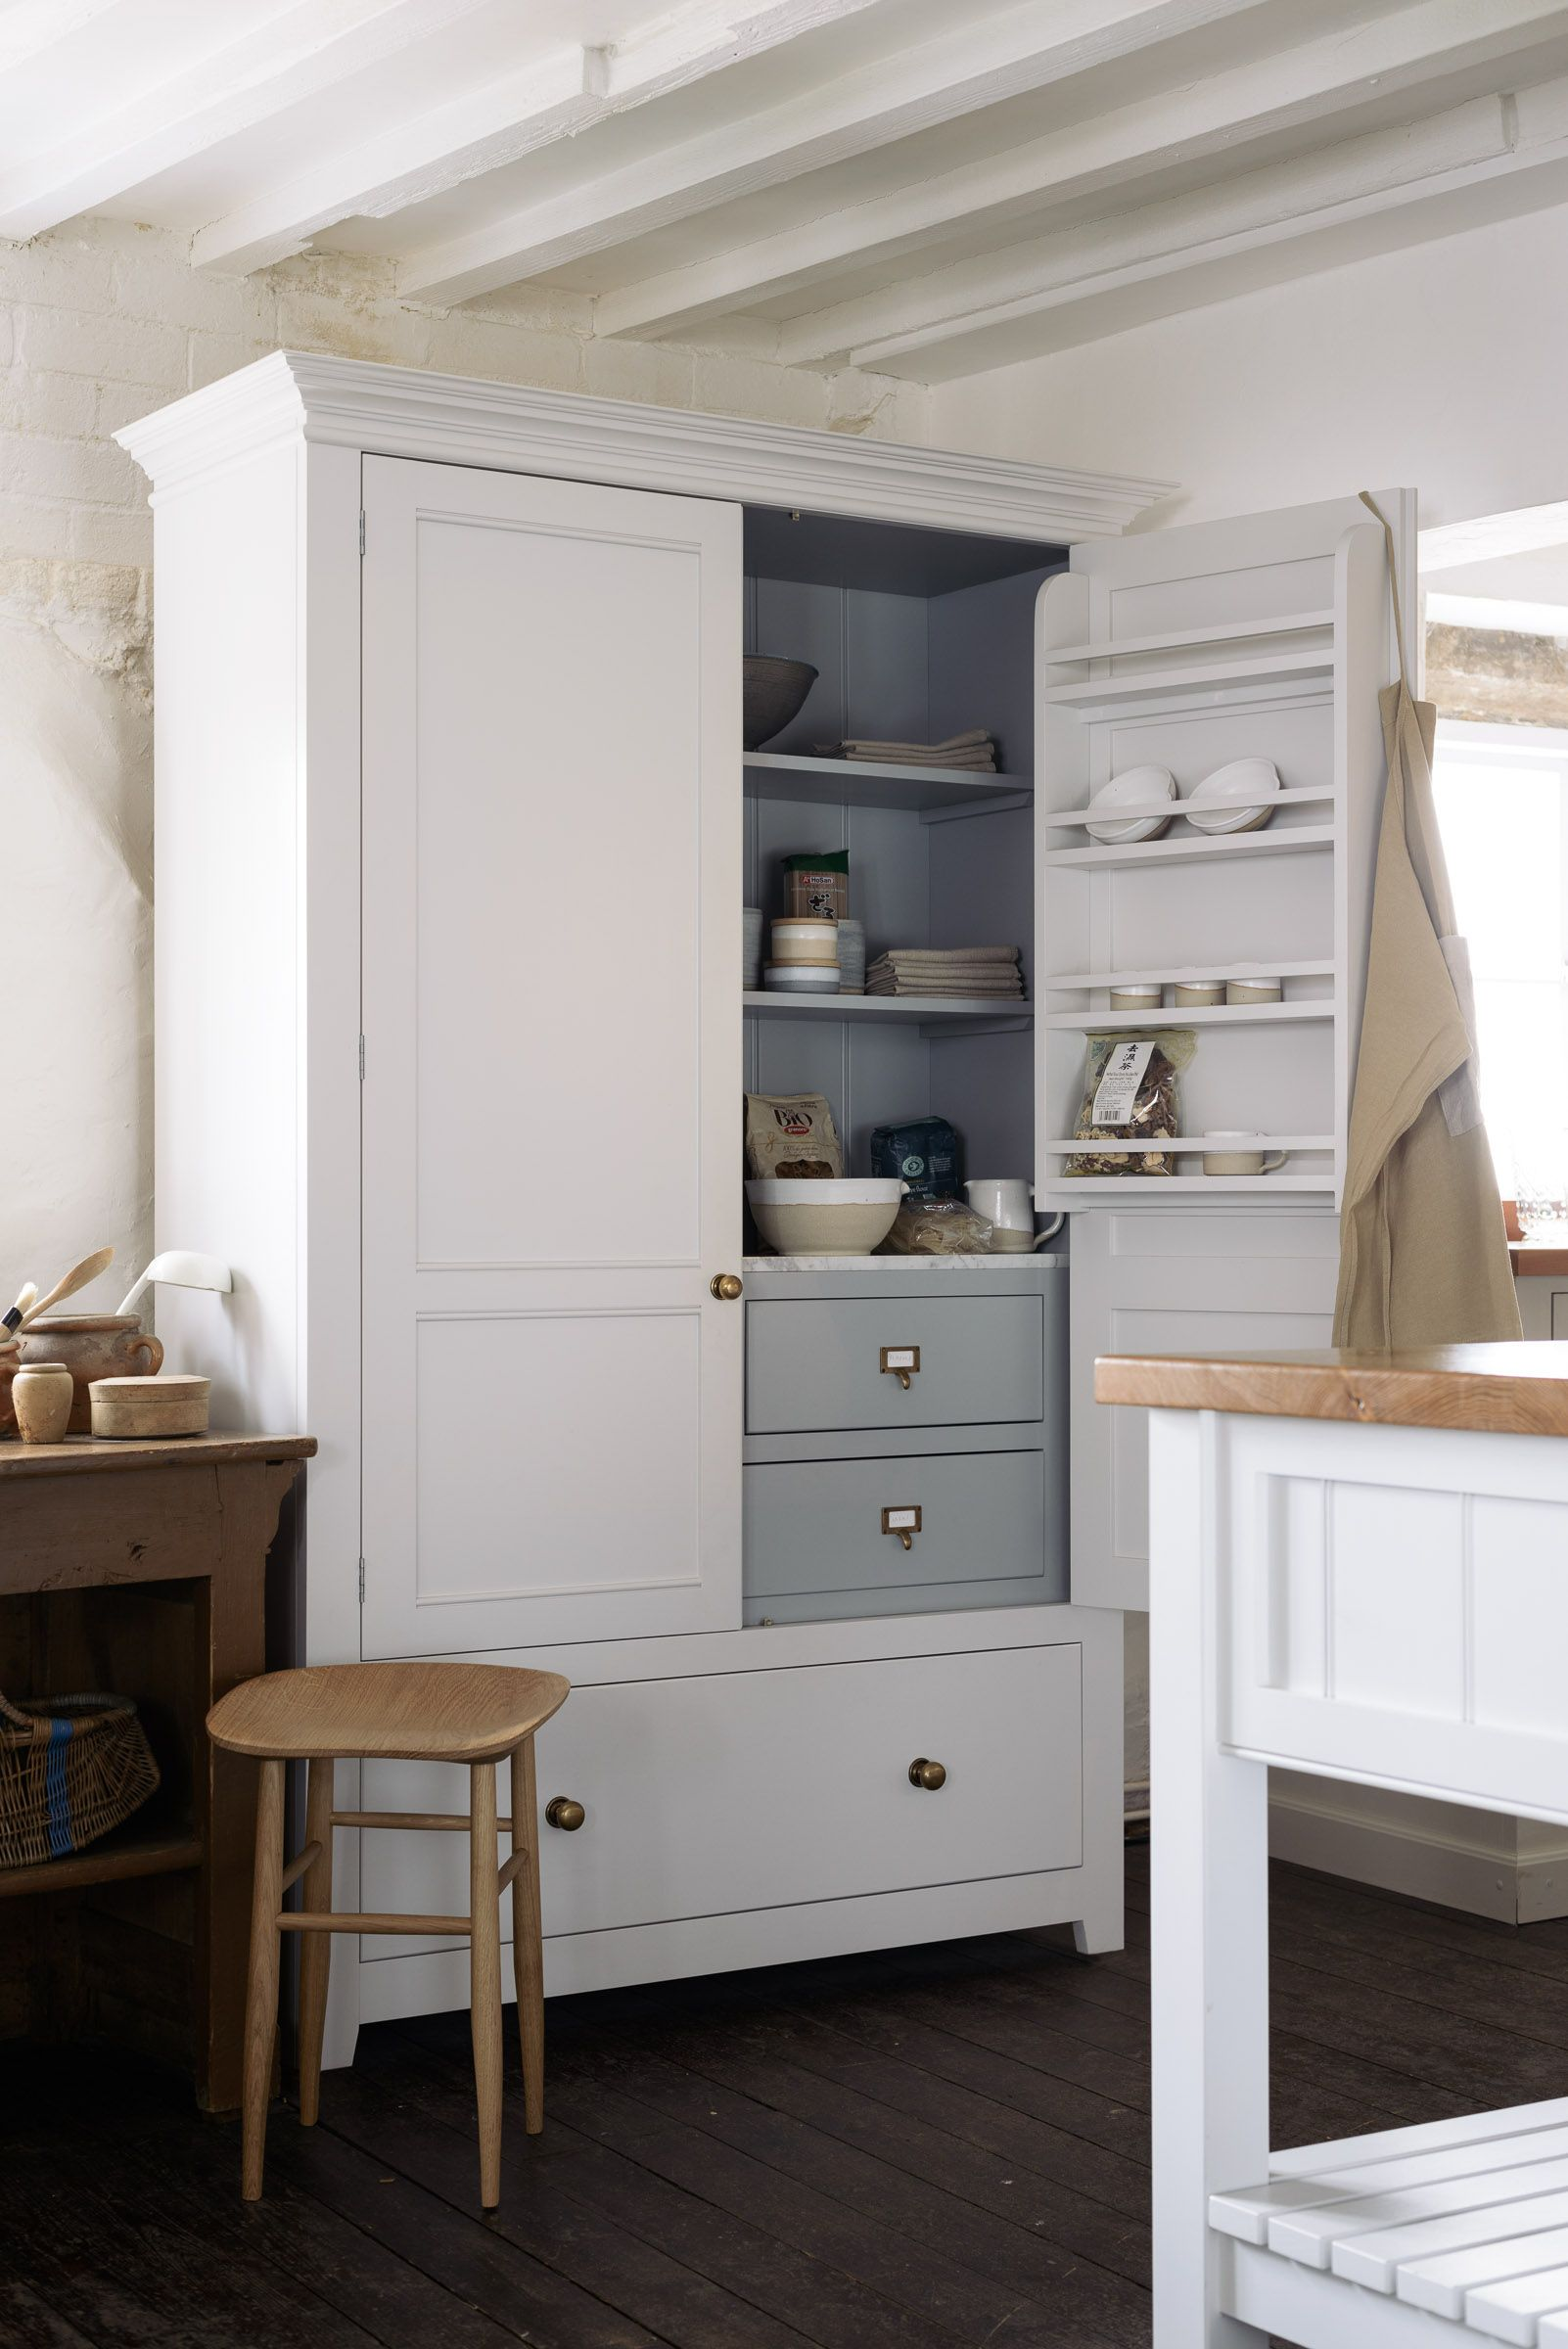 The Classic English Pantry Cupboard By Devol Nothing Surplus To